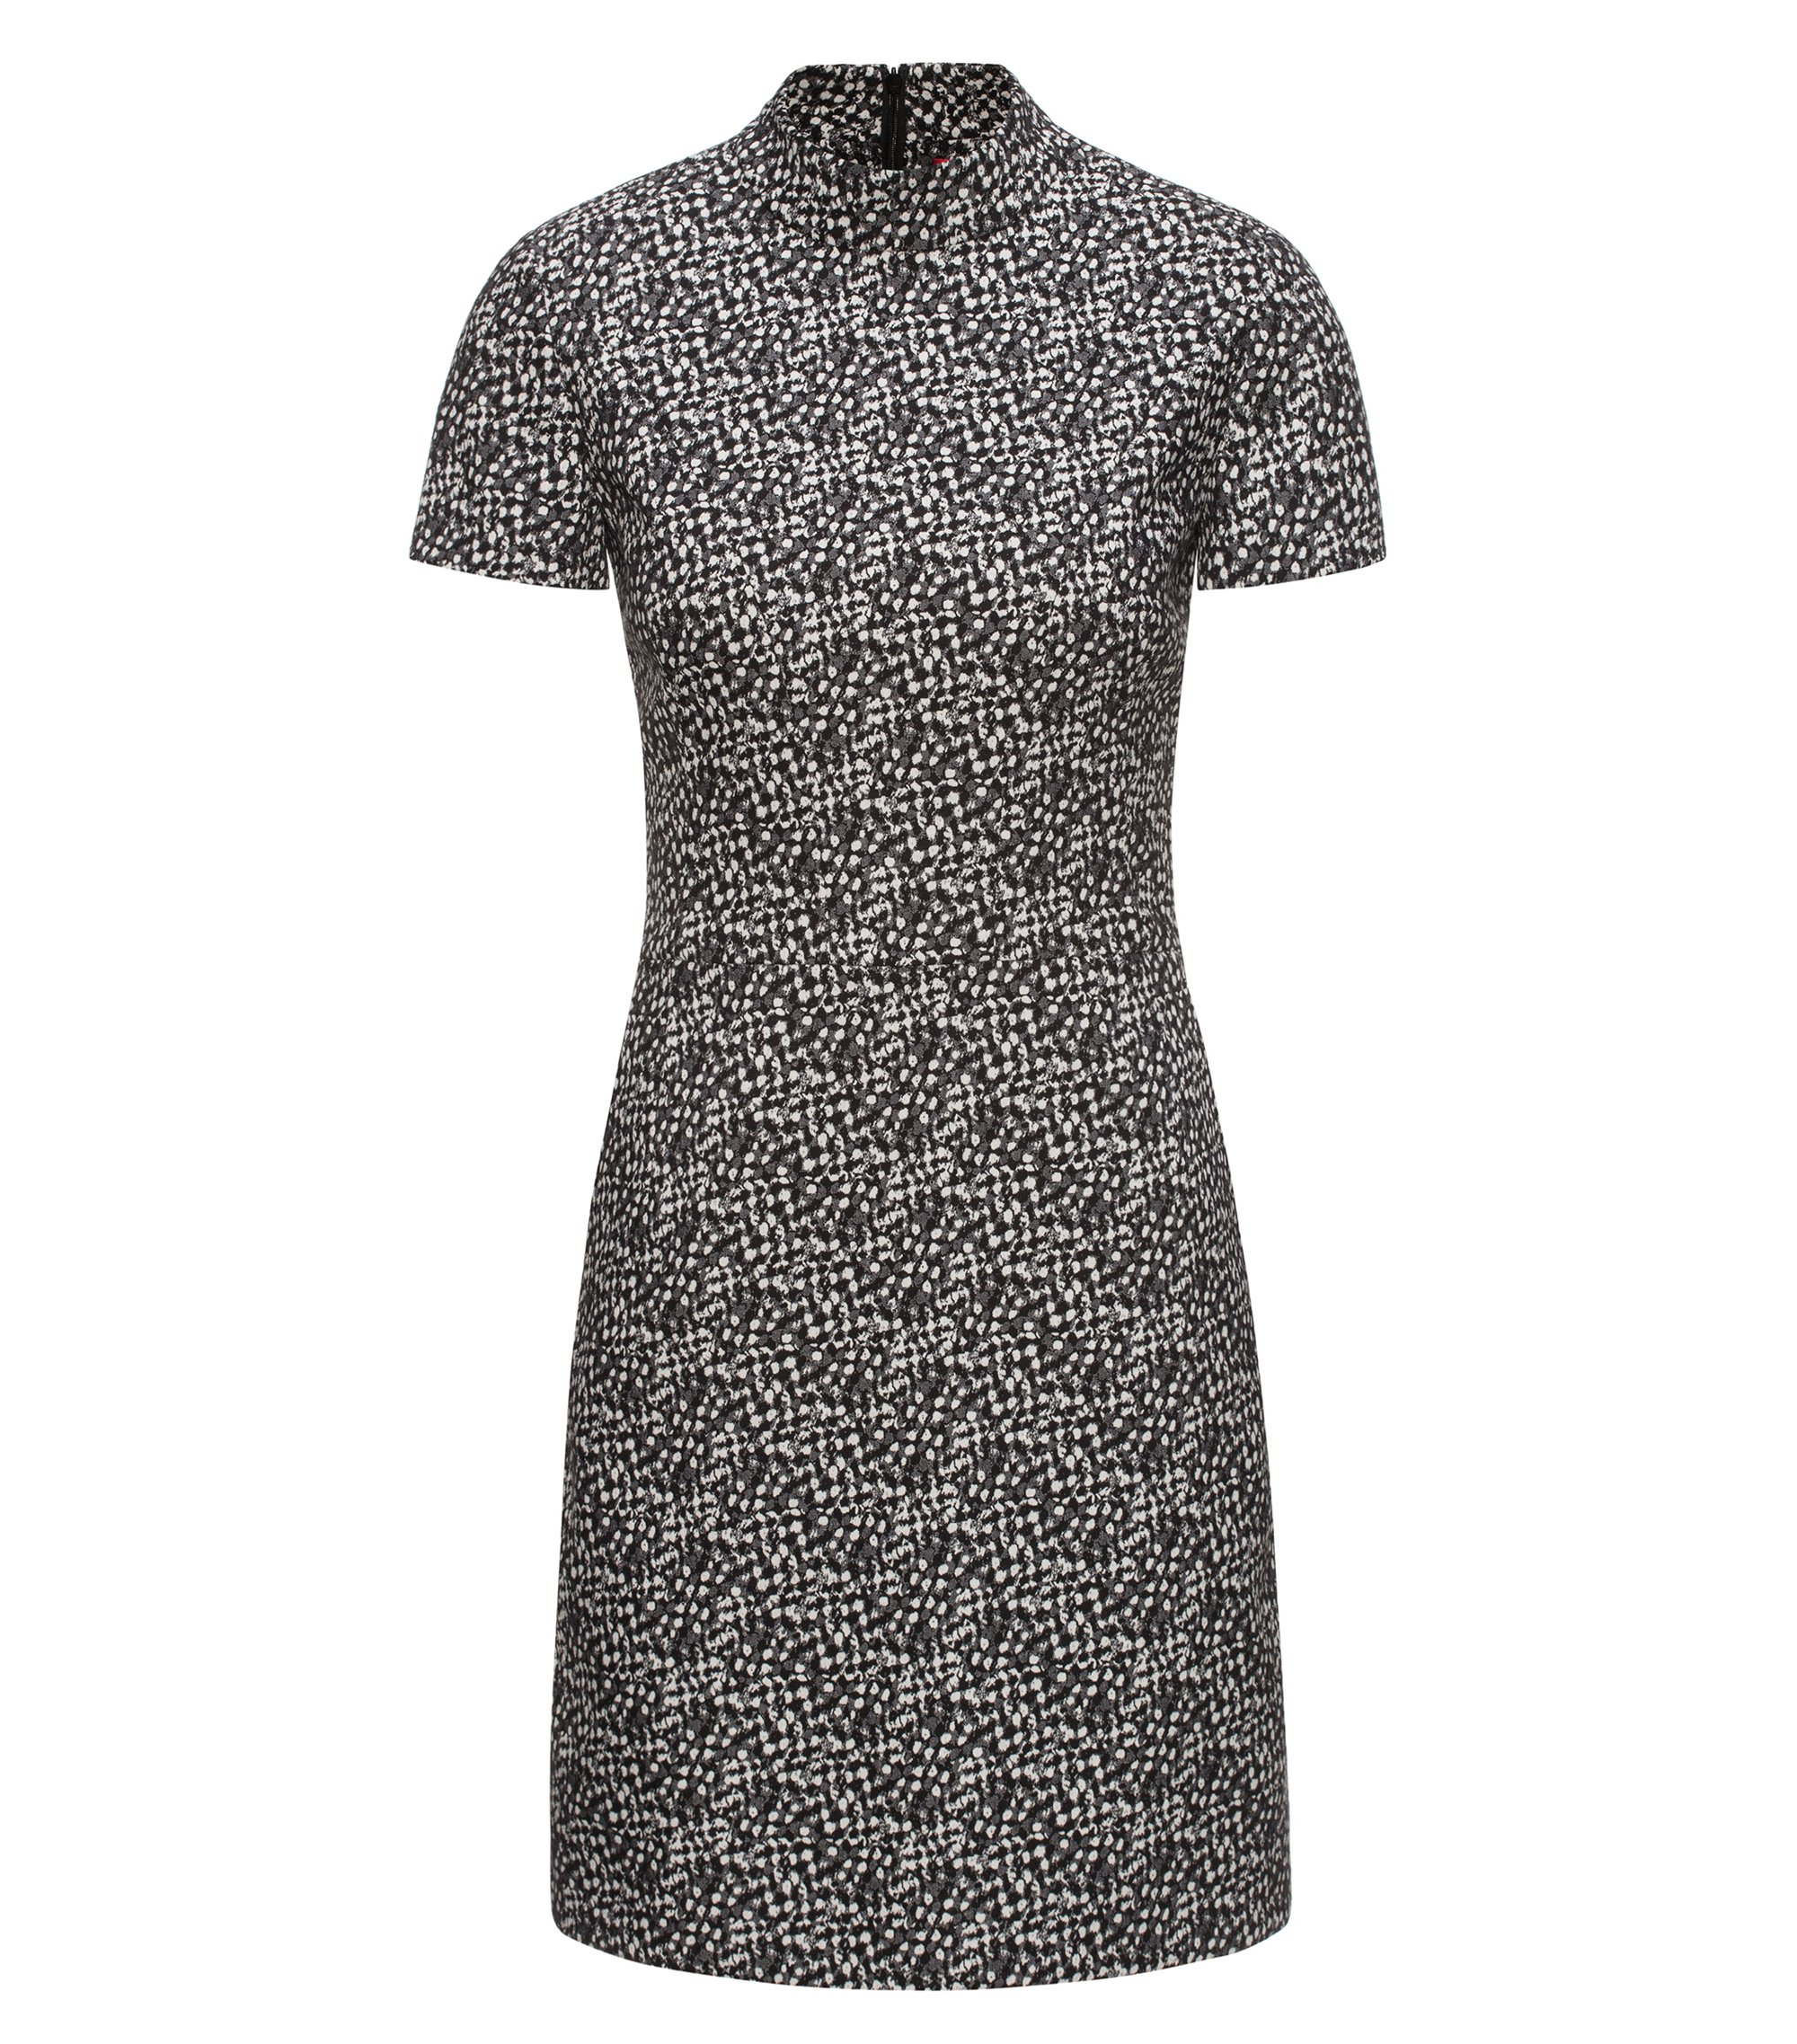 Turtle-neck patterned dress in a cotton blend, Black